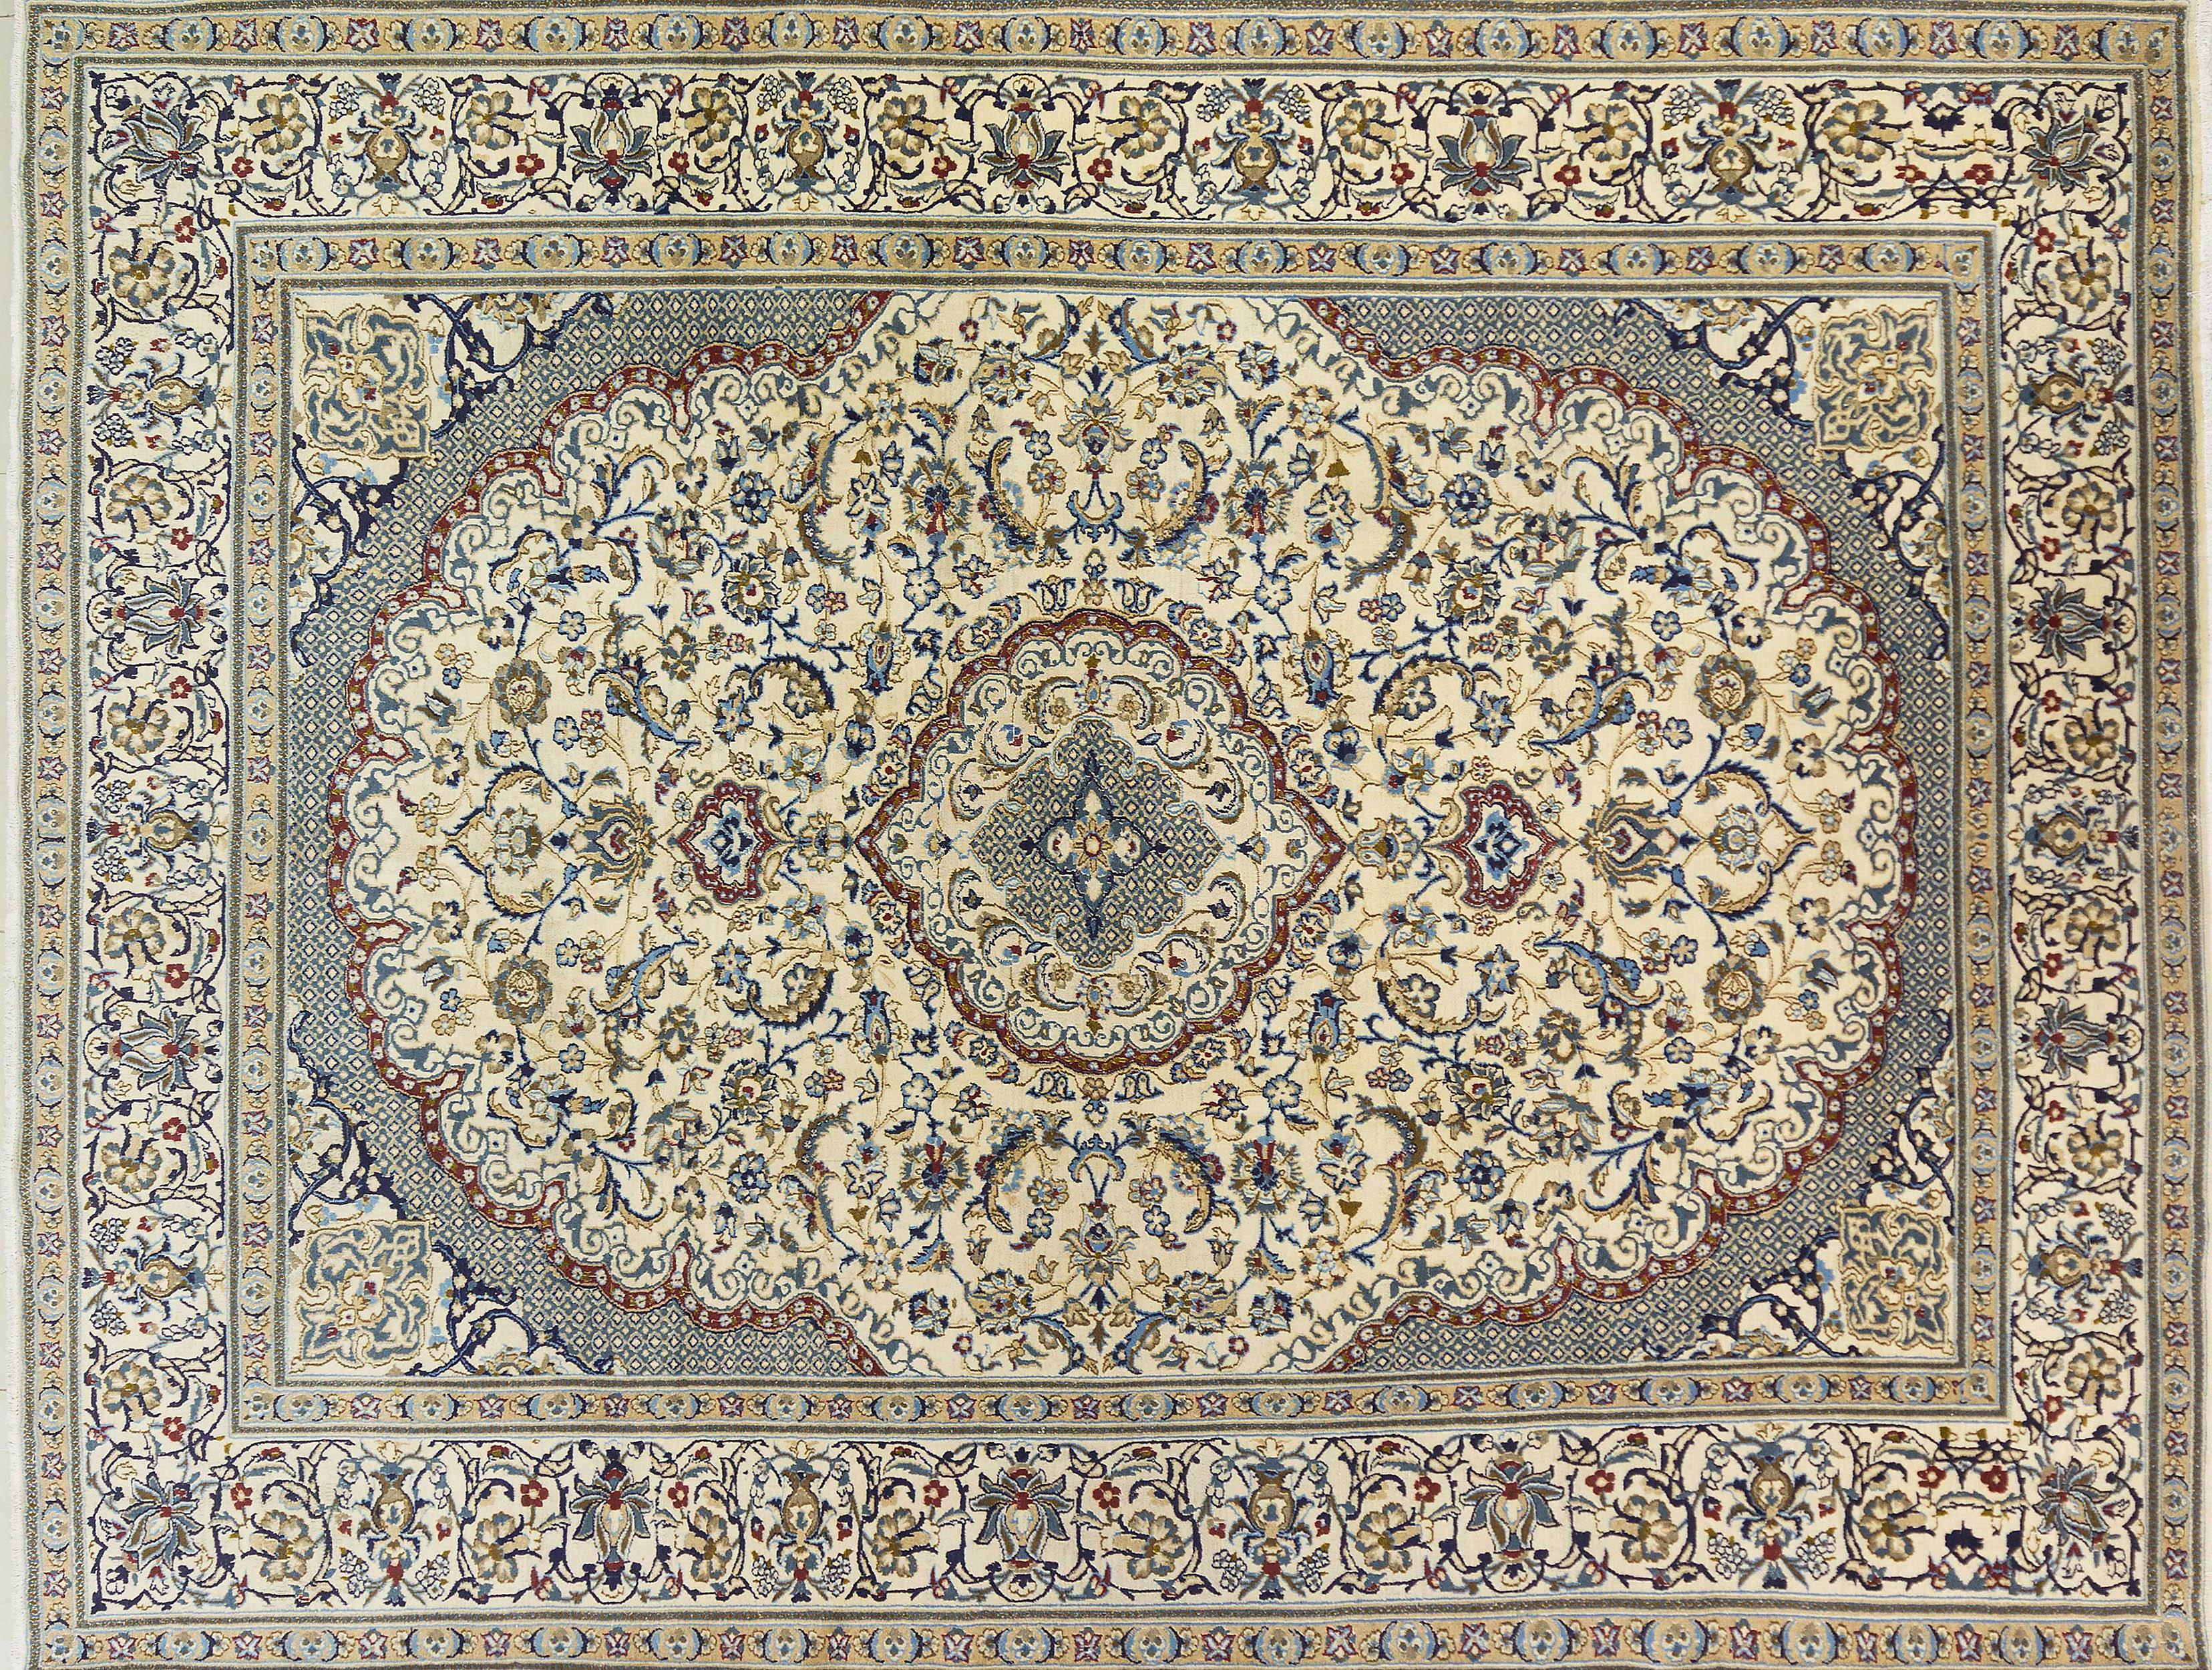 A Persian Hand Knotted Nain Carpet, 382 x 295